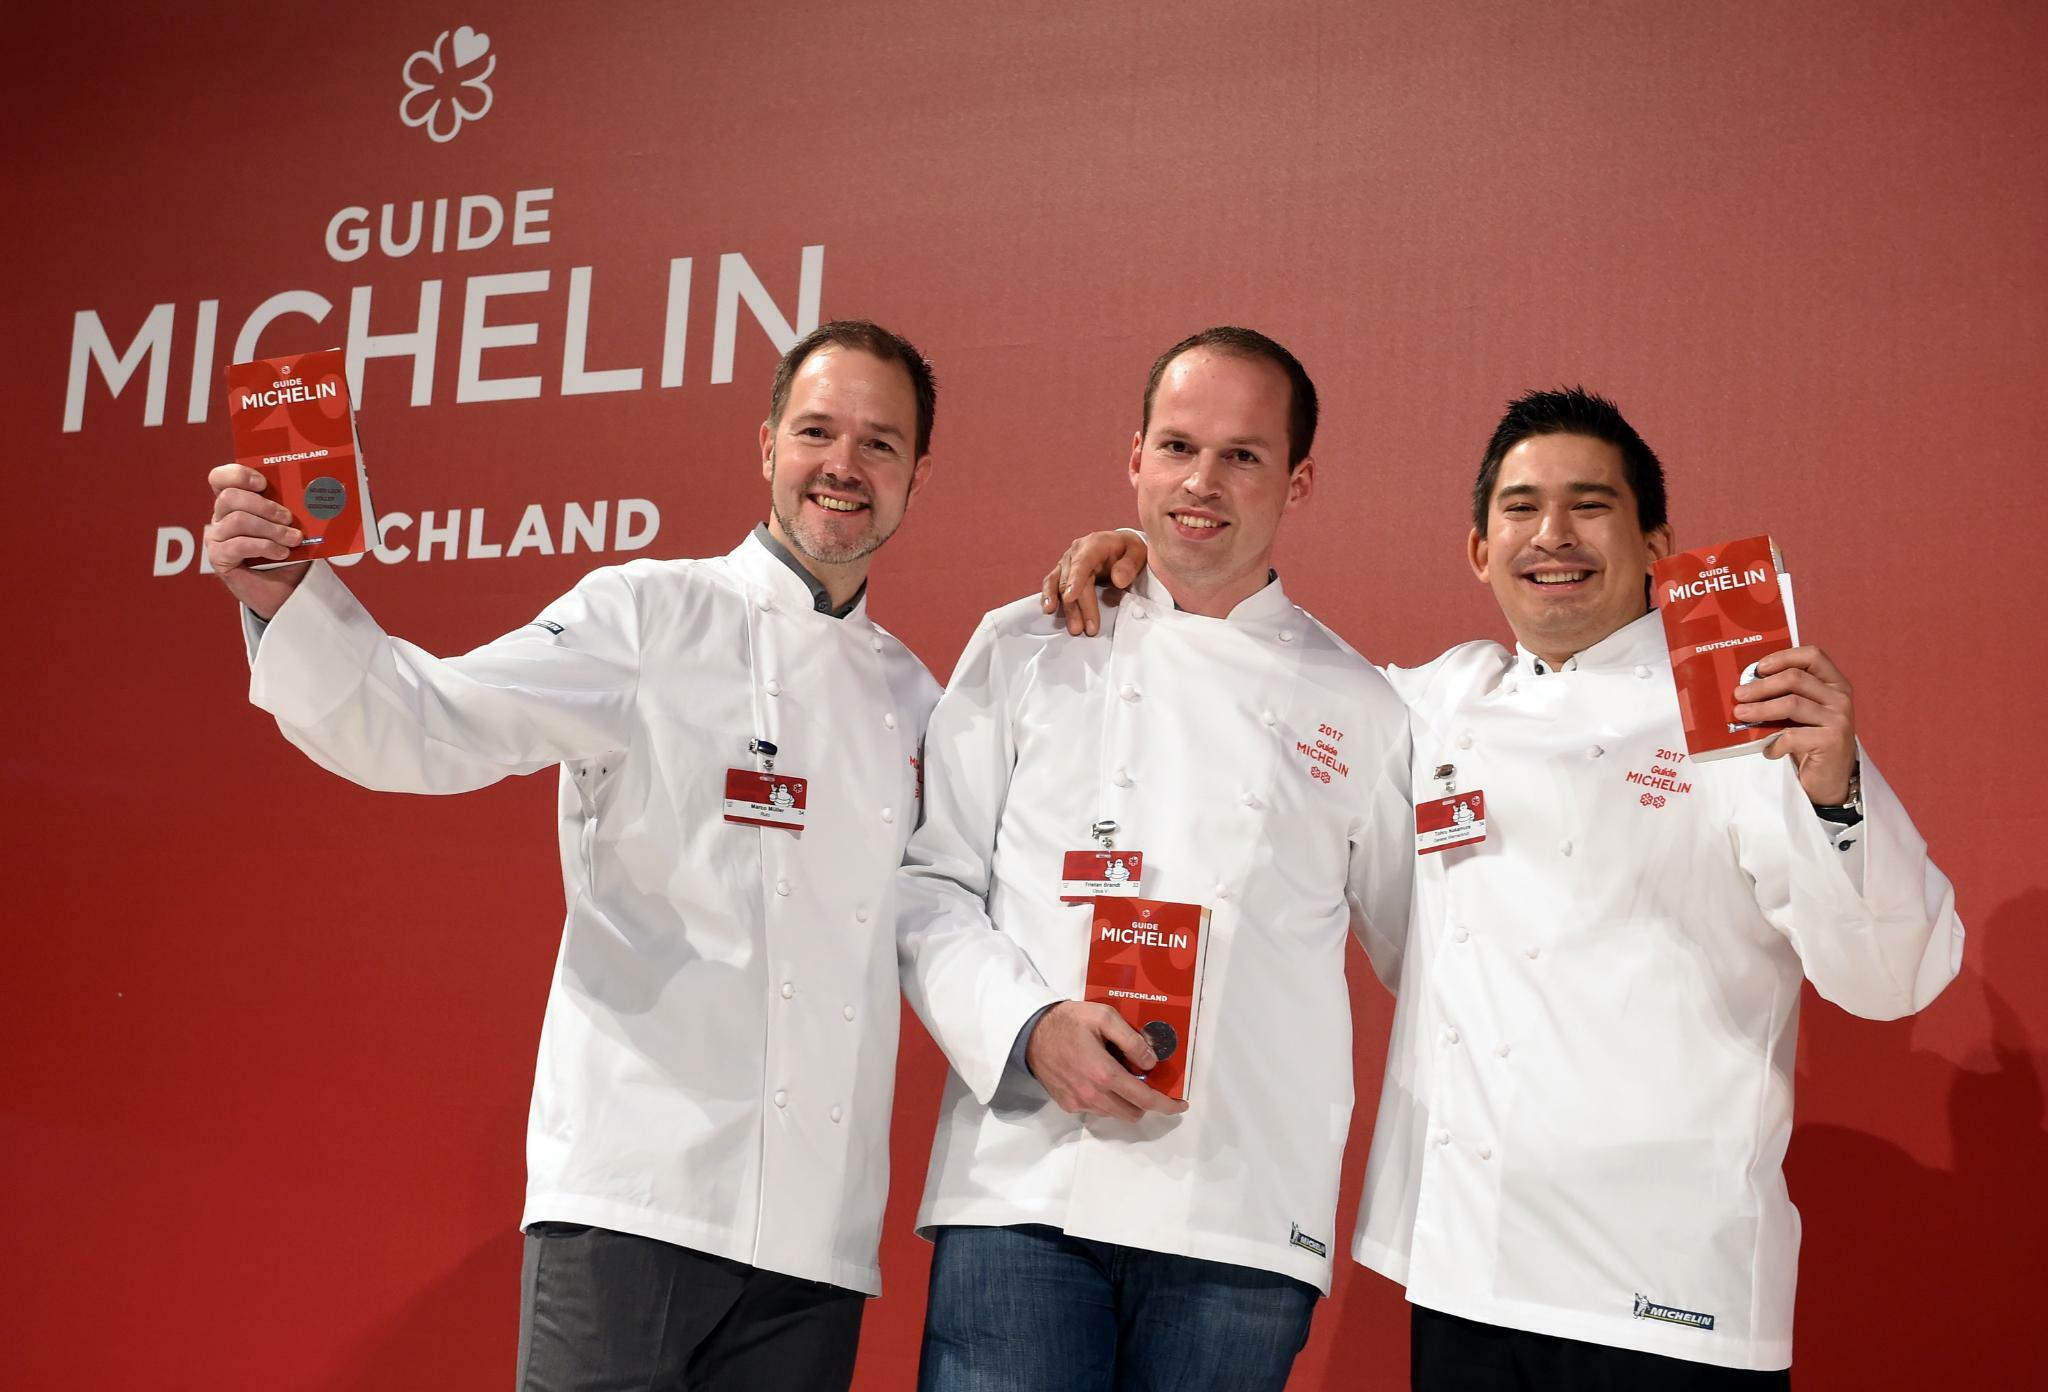 gala des guide michelin in berlin: berliner sternekoch marco